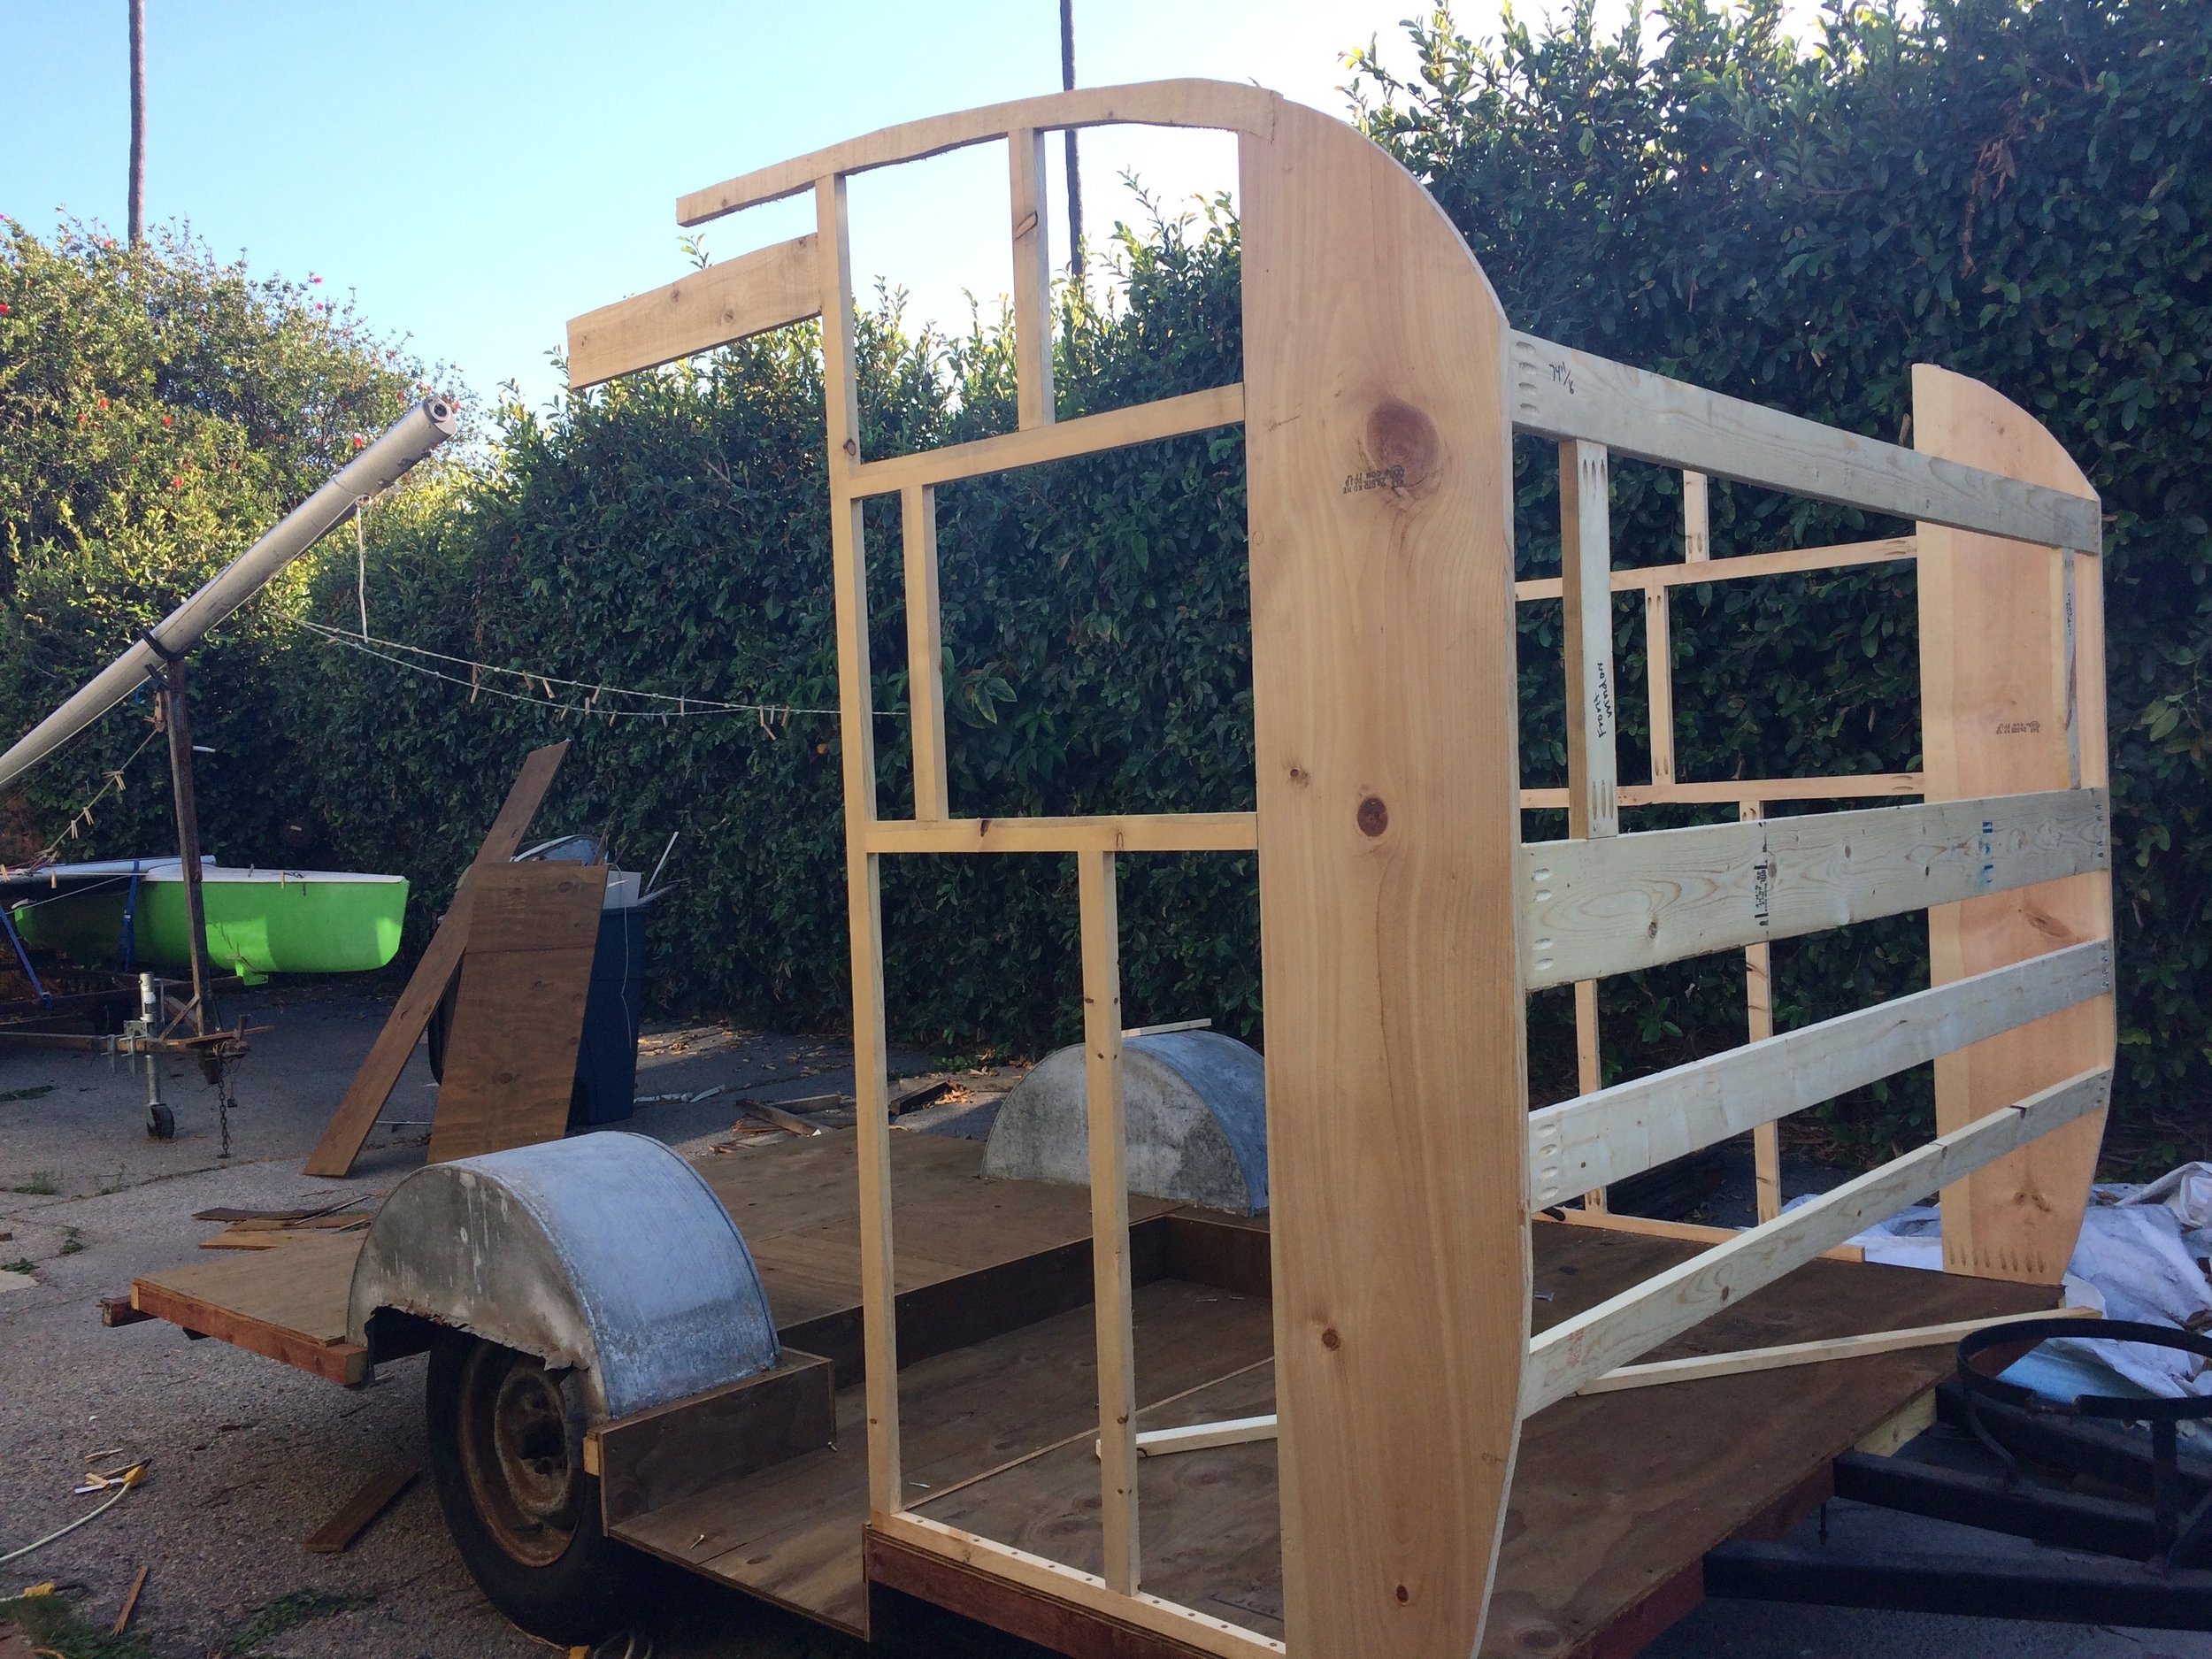 Front of the trailer frame